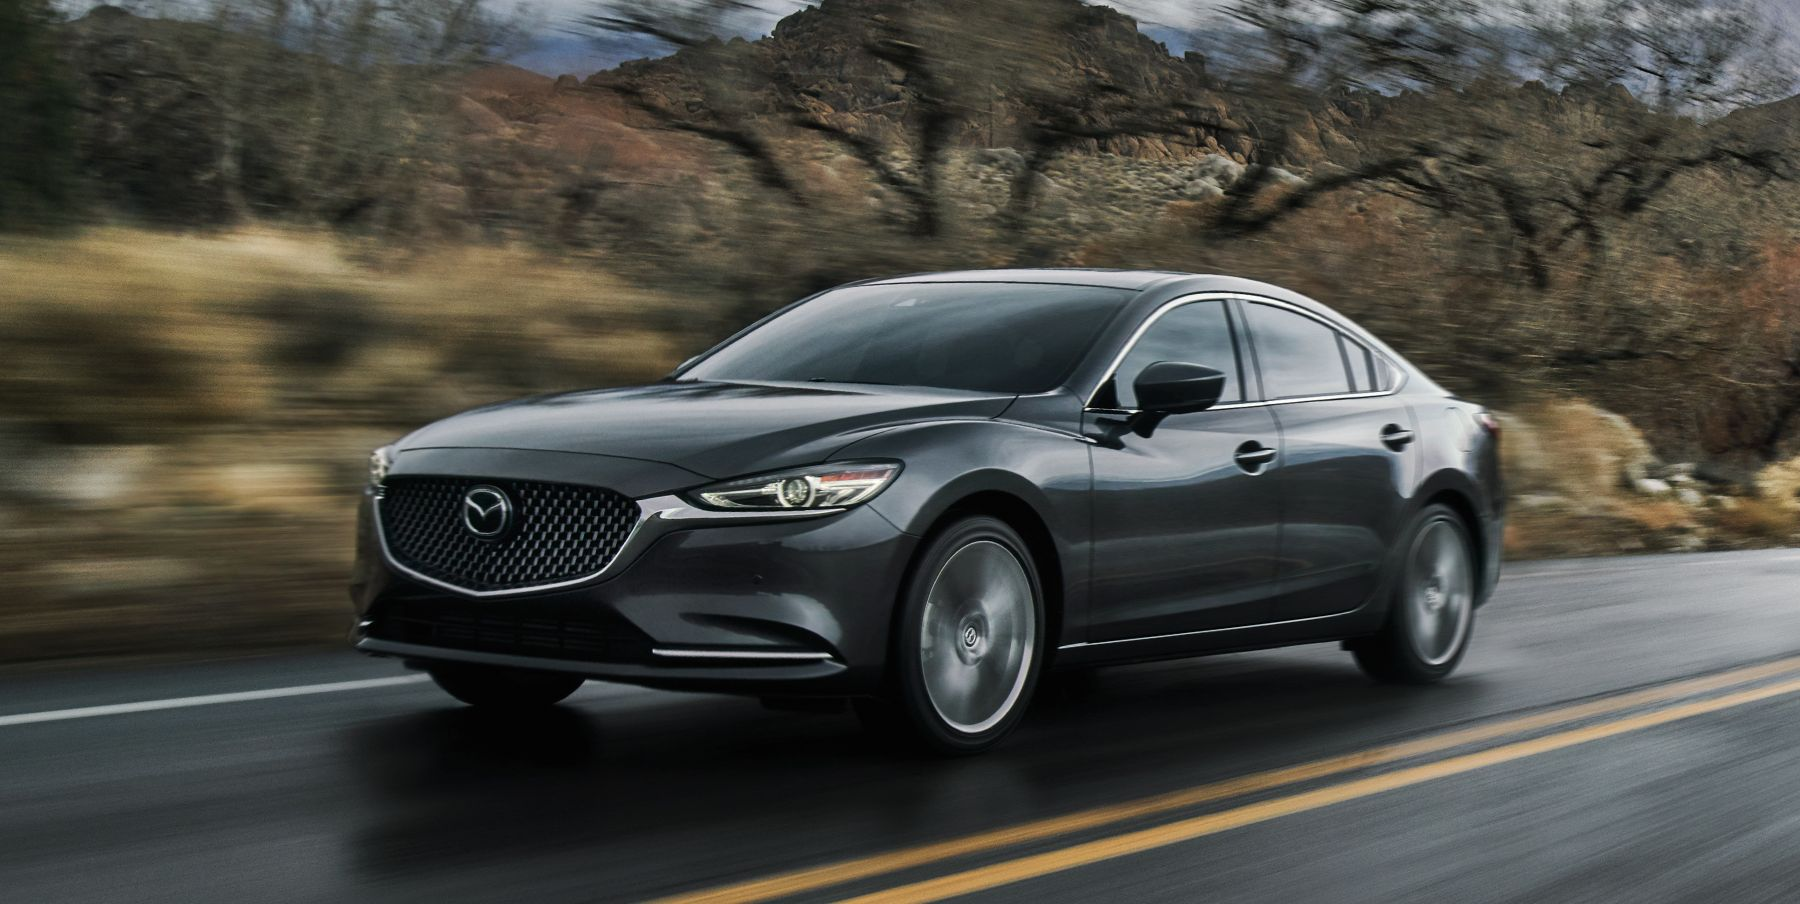 The Mazda 6 Is Officially Getting a Diesel and All-Wheel Drive